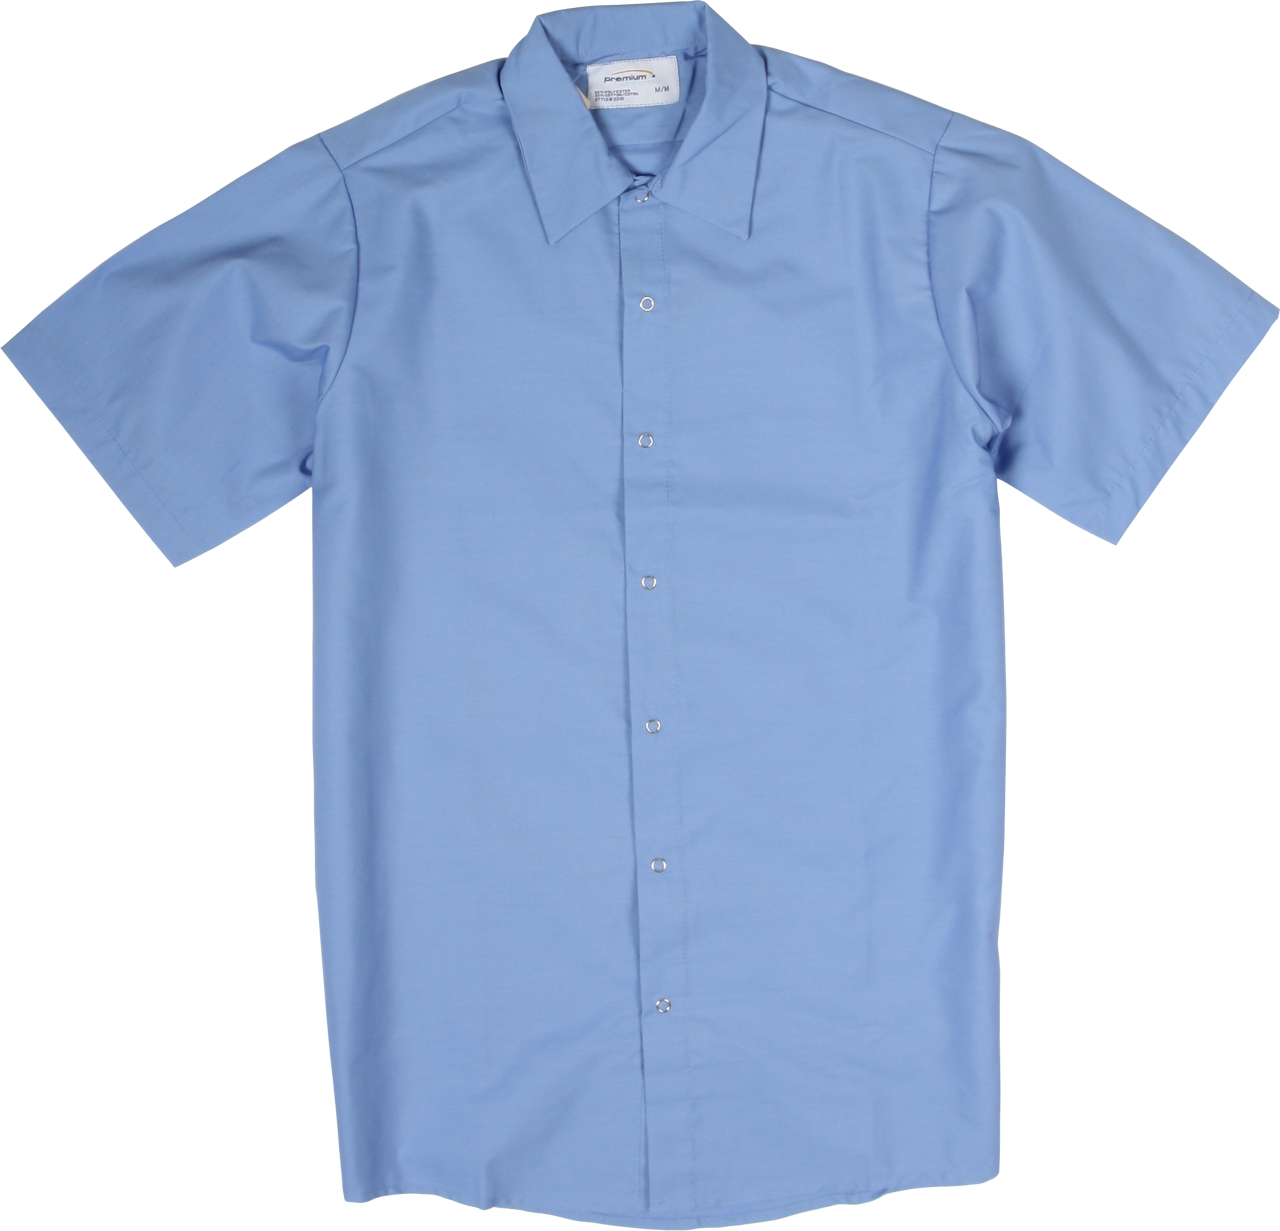 Picture of Premium Uniforms Food Industry Short Sleeve Shirt